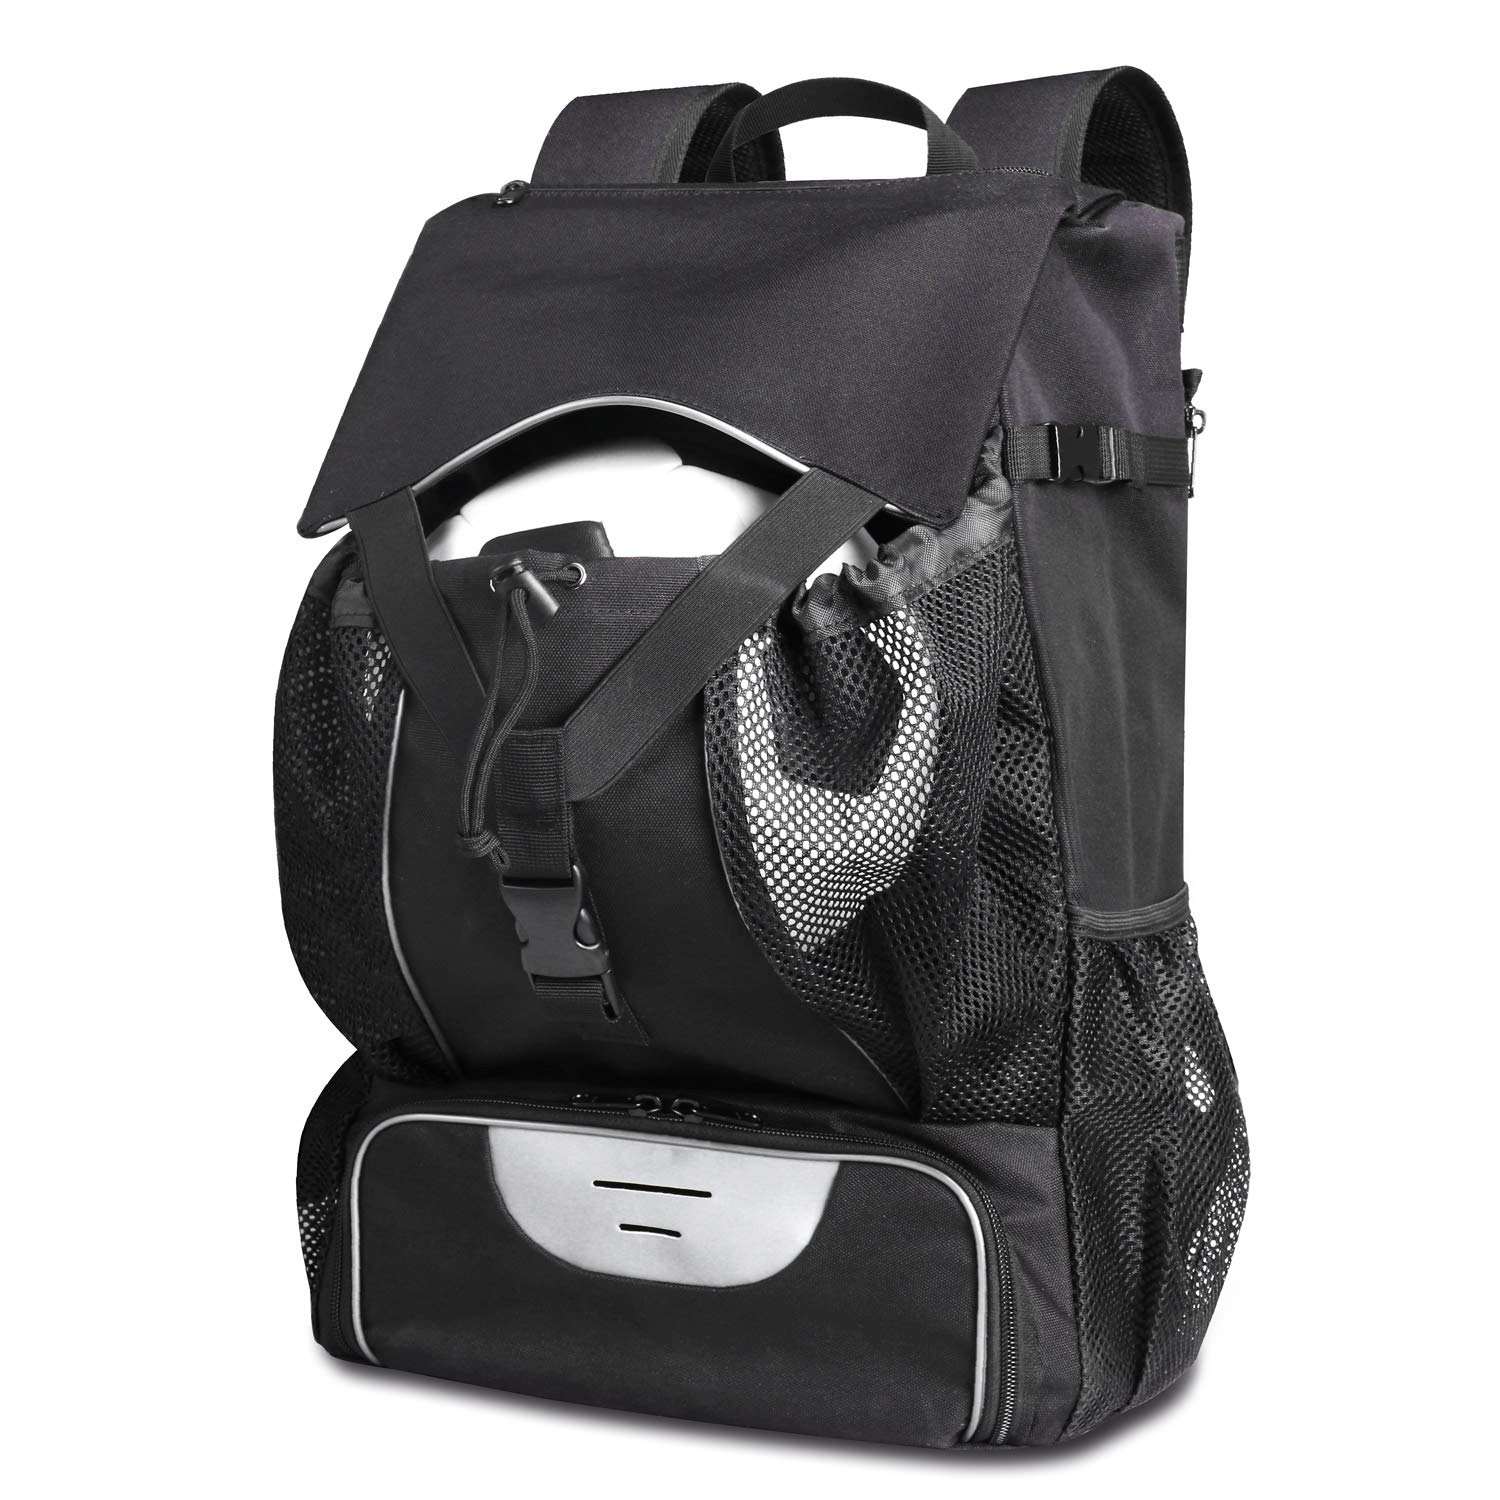 880e5fe2eb12 Amazon.com   Estarer Soccer Bag Backpack Fit Baseball Basketball Football  Volleyball w 15.6inch Laptop Compartment Sport Backpack   Sports   Outdoors